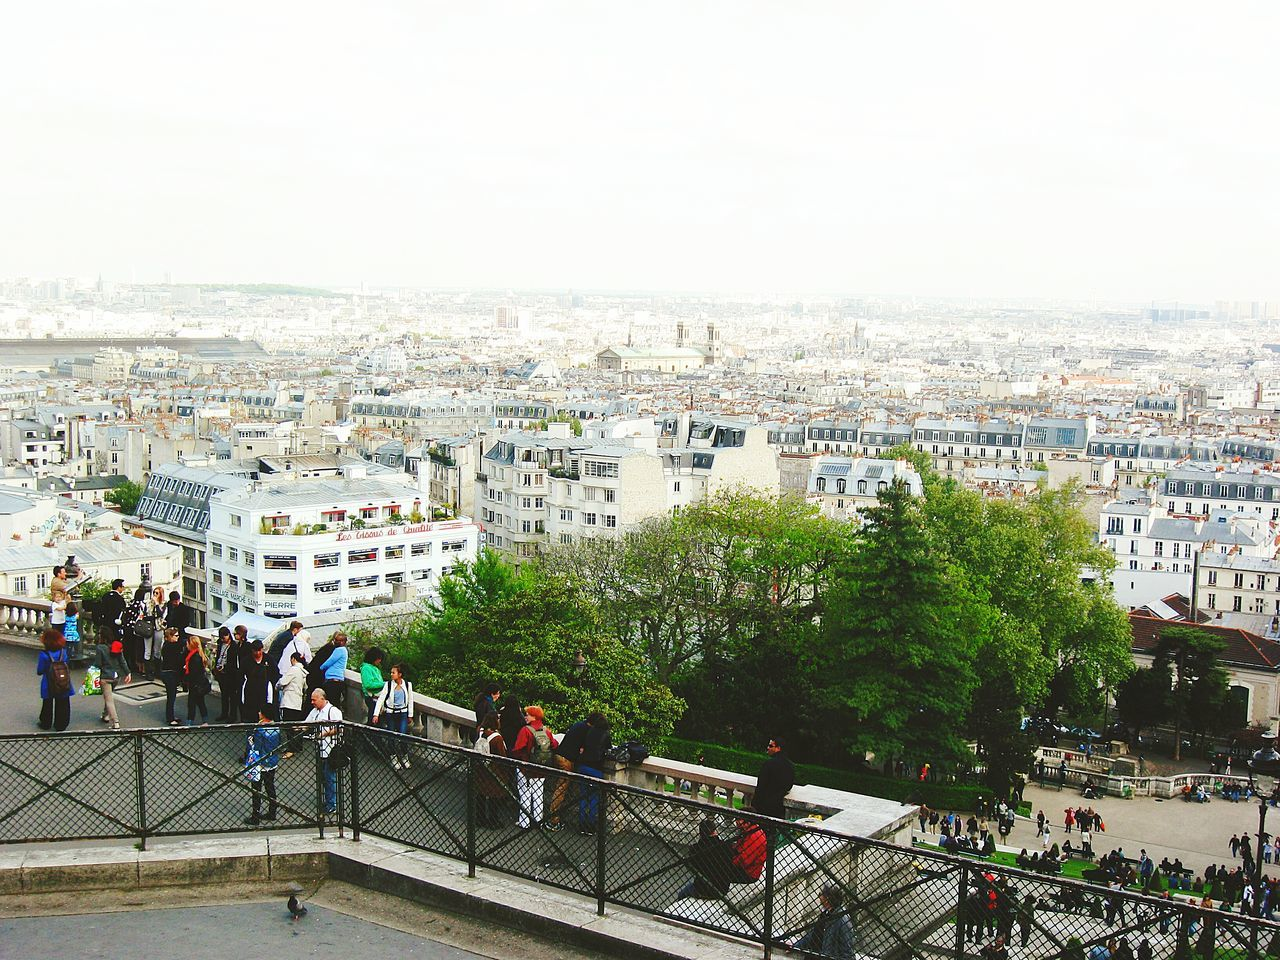 Large Group Of People Outdoors Tree Cityscape Adults Only Day People Sky France Photos Street Travel Destinations Parisweloveyou Skyscraper Parispics Stretphotography Paris, France  Panoramic Landscape Pariskyline Francetourism Buildings Architecture Cityscape Building Exterior Monuments Architecture Aerial View